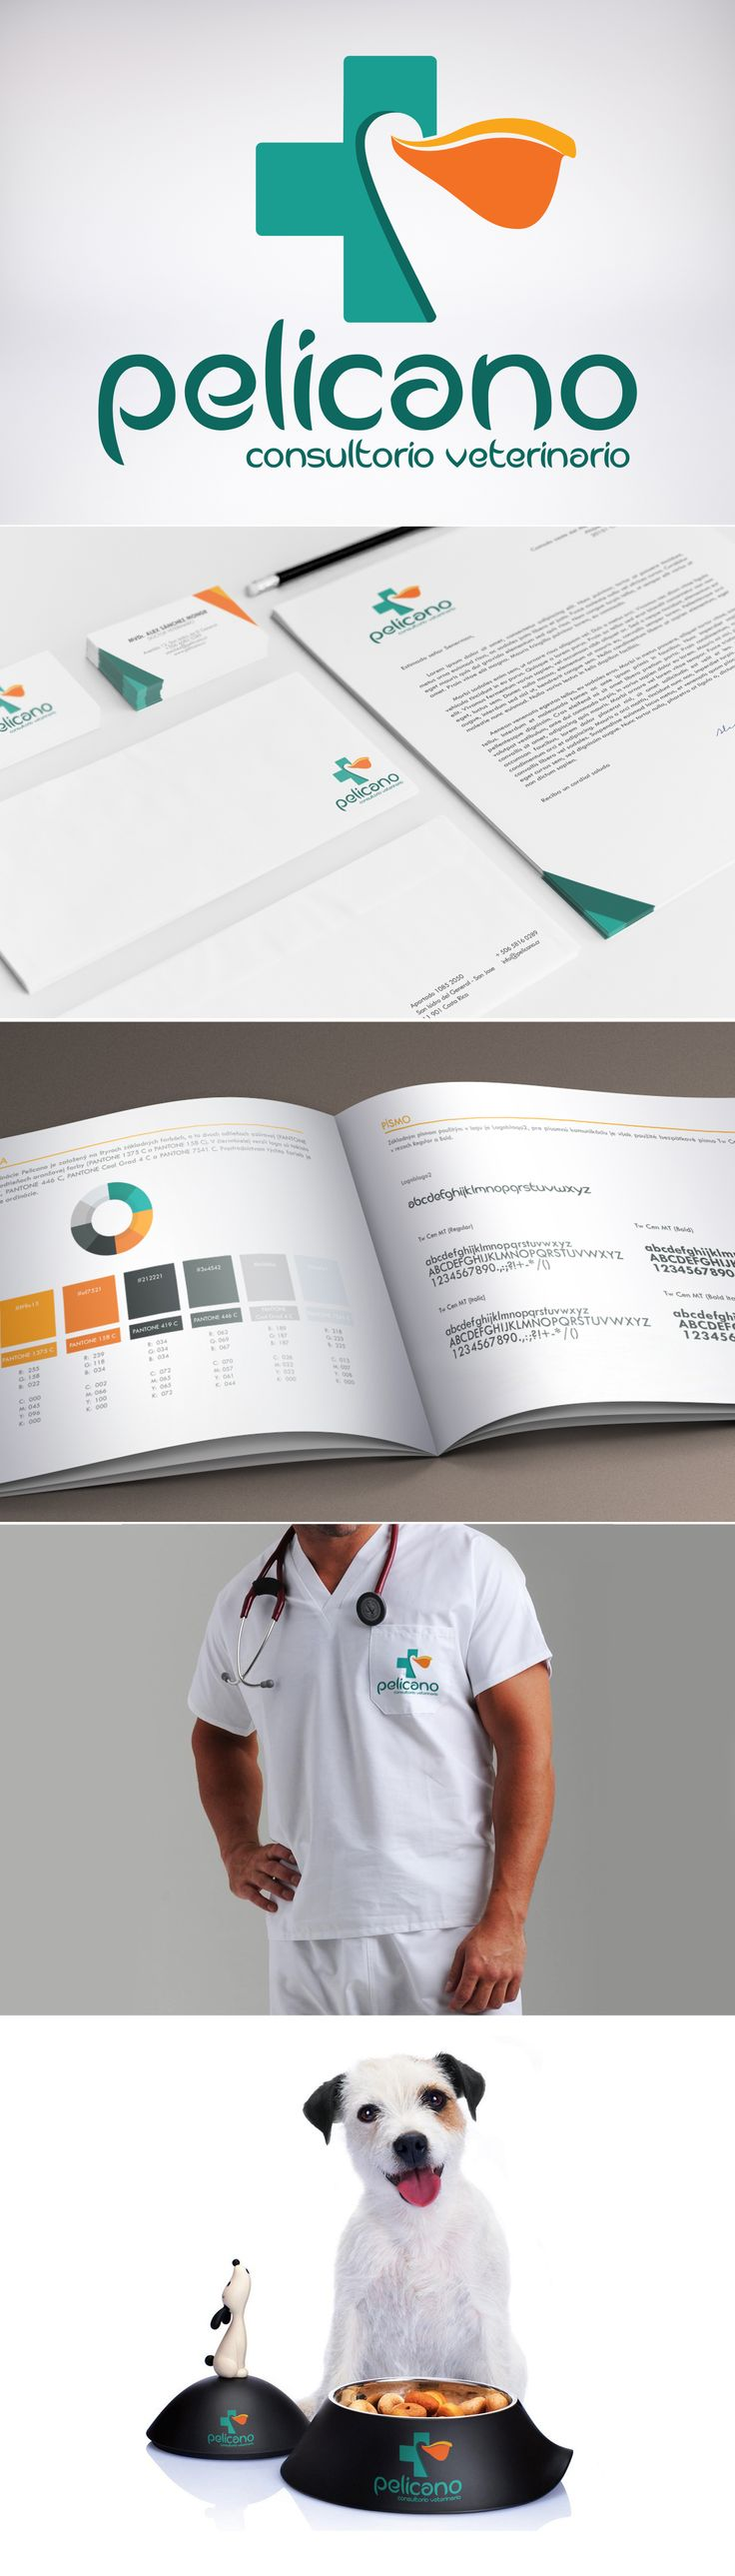 Brand identity for the Costarican veterinary clinic Pelicano.   More about this project on https://www.behance.net/gallery/17064965/Pelicano